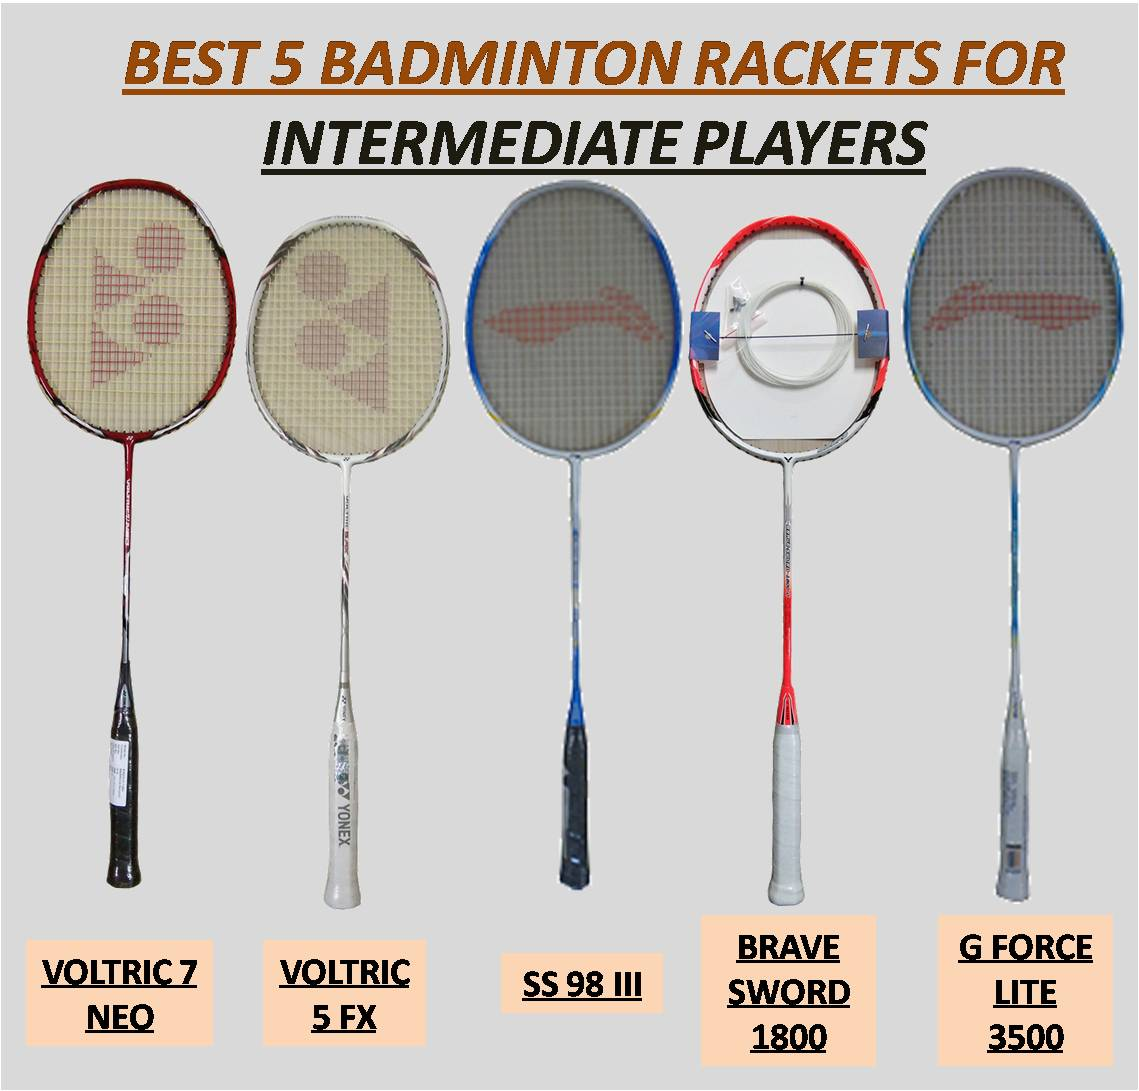 BEST 5 BADMINTON RACKETS FOR INTERMEDIATE PLAYERS 1